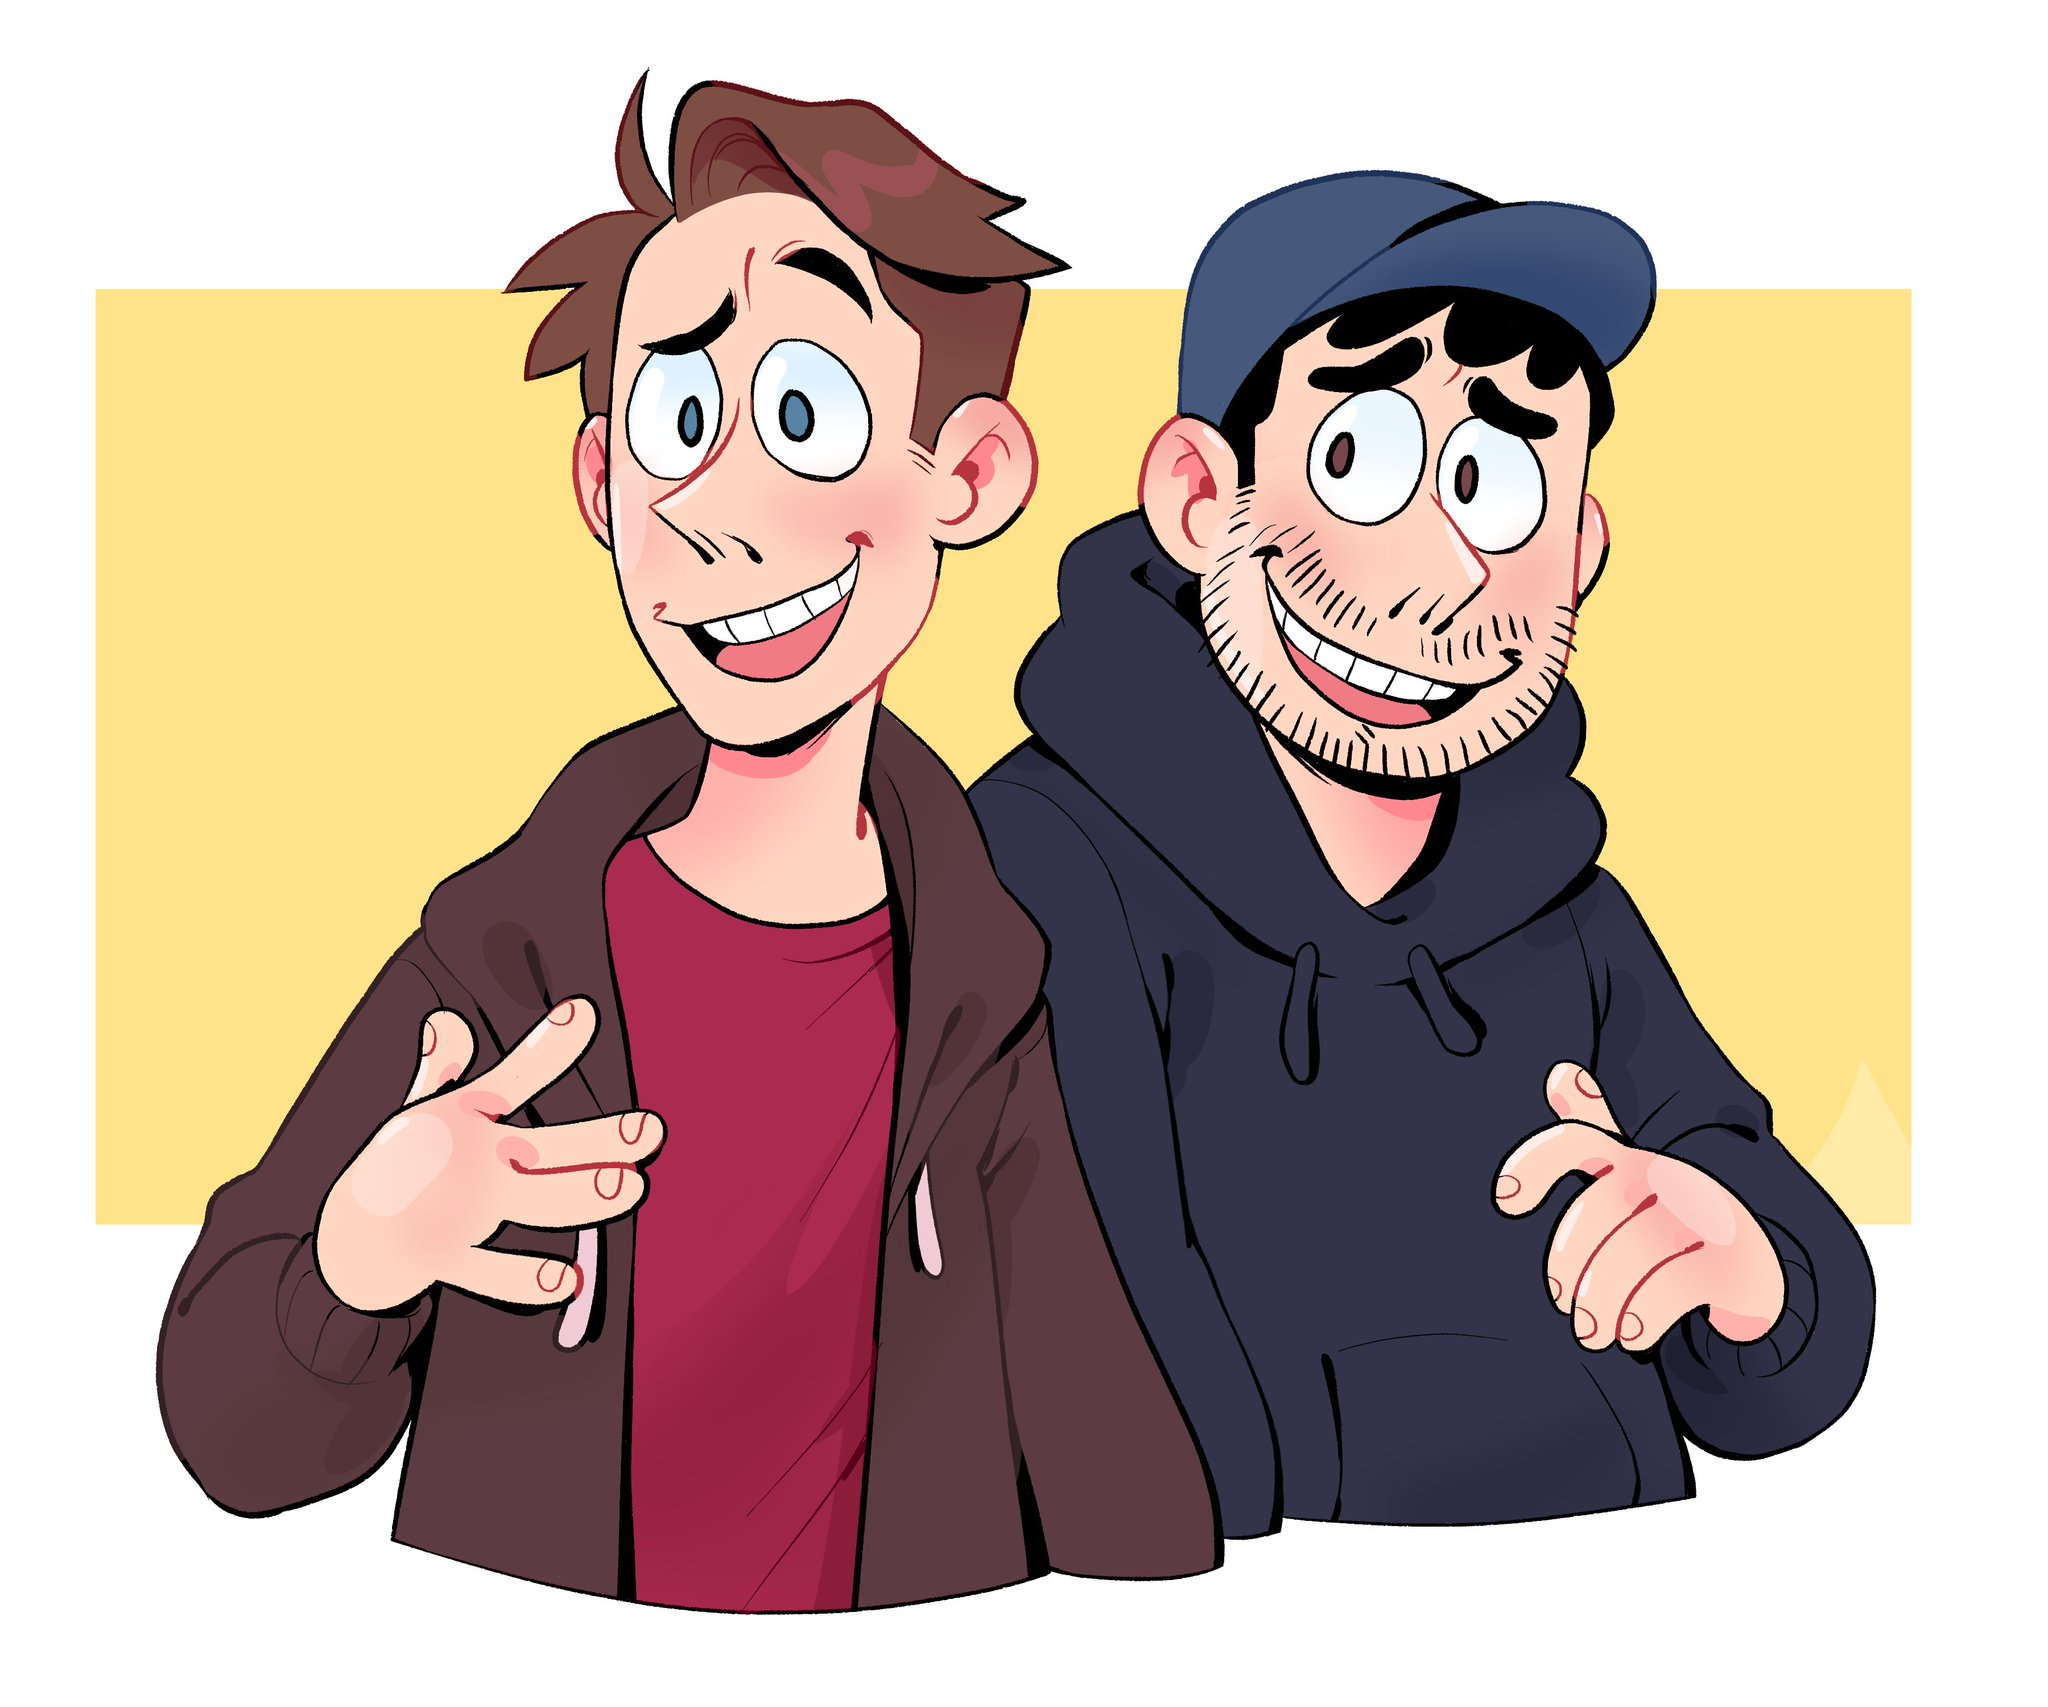 RT @K1ttensocks: Trying to learn how to draw the @SuperMegaShow boys https://t.co/tXgC6VCZBm